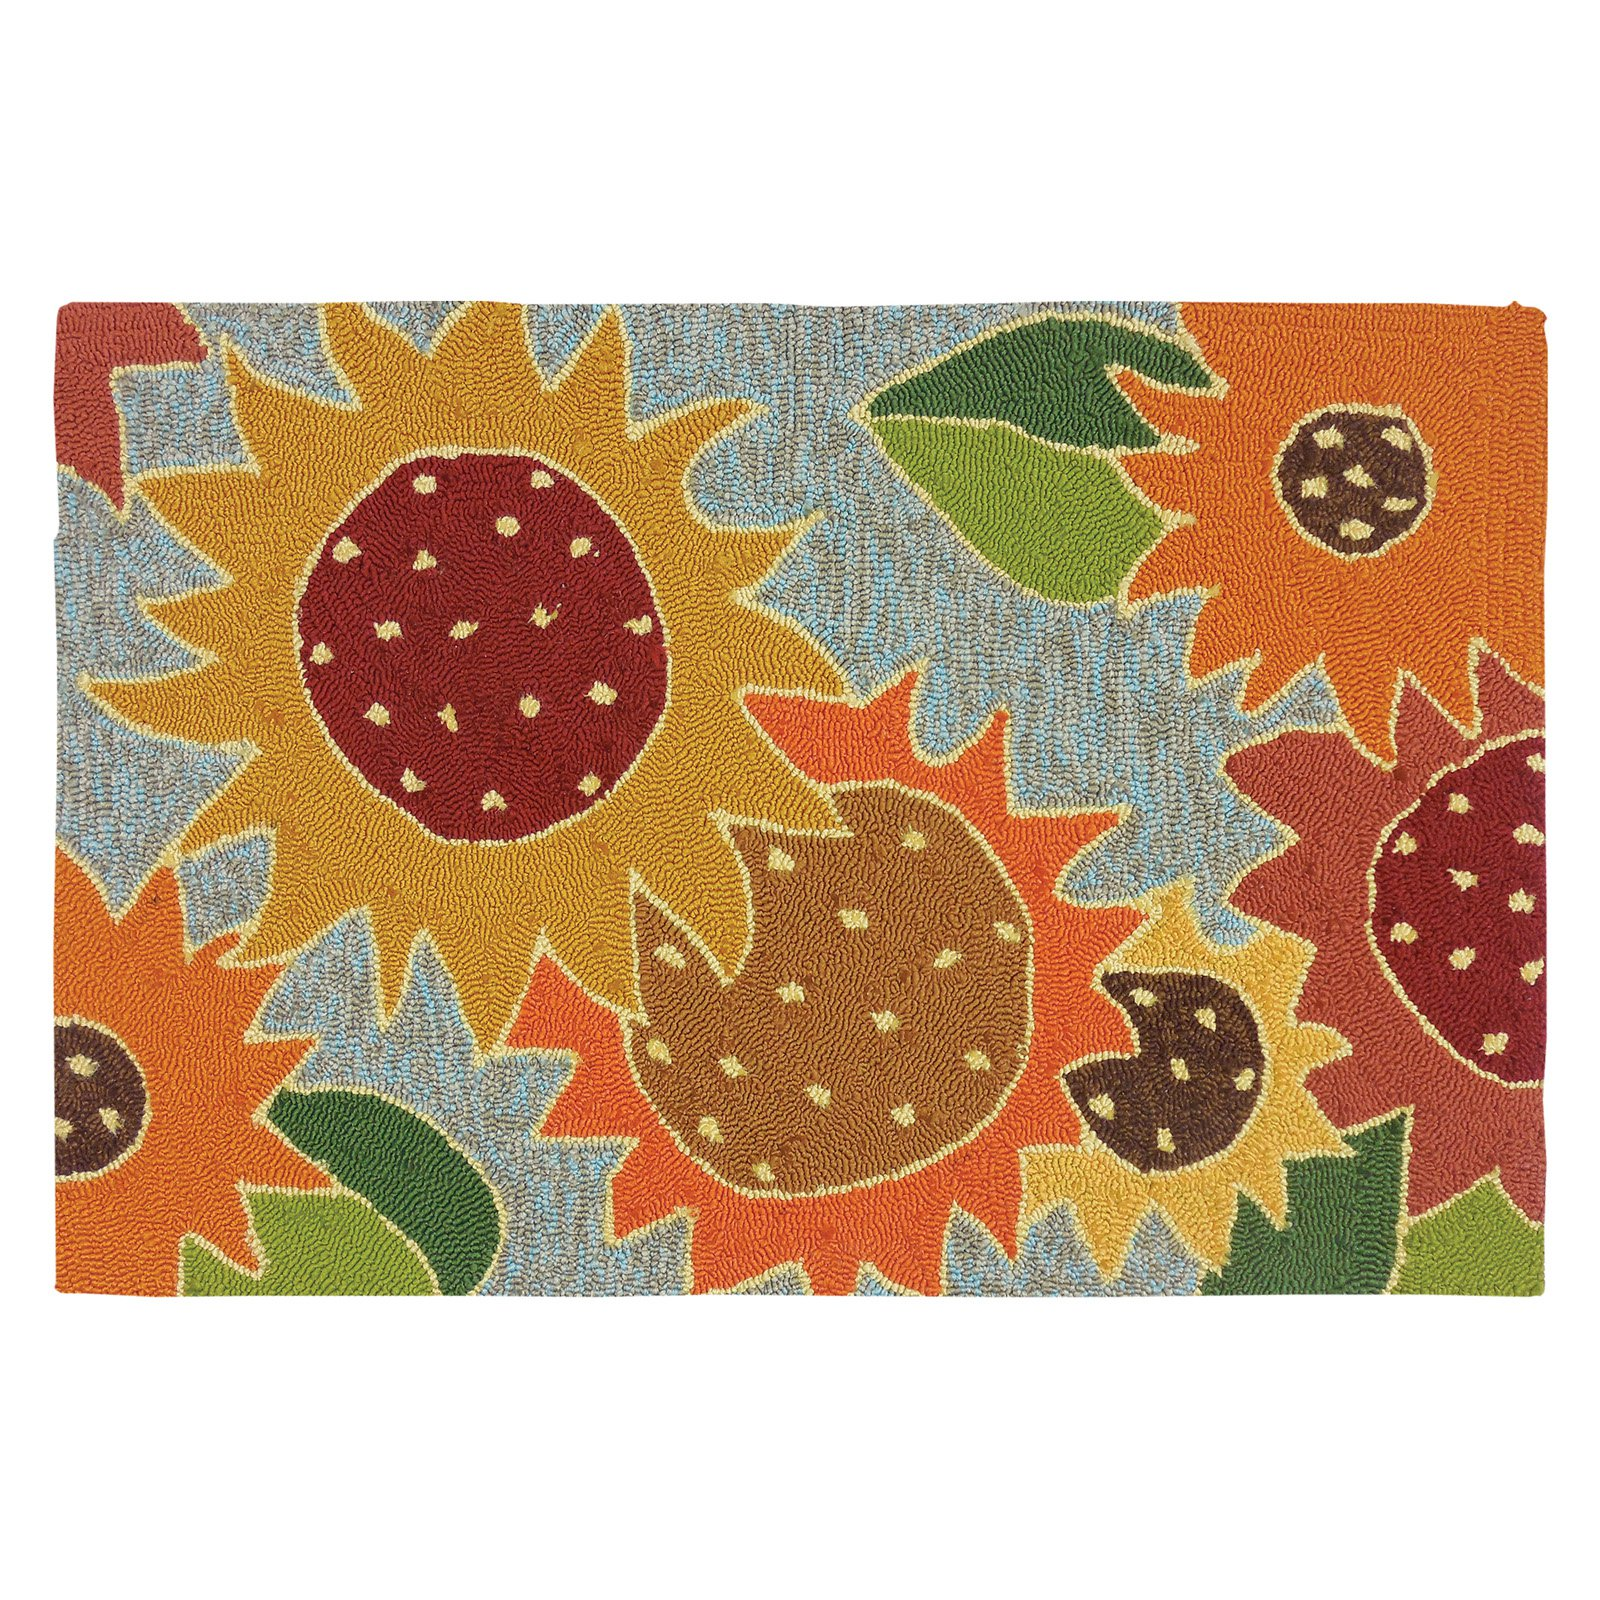 Homefires Sunflower Impression Indoor/Outdoor Accent Rug